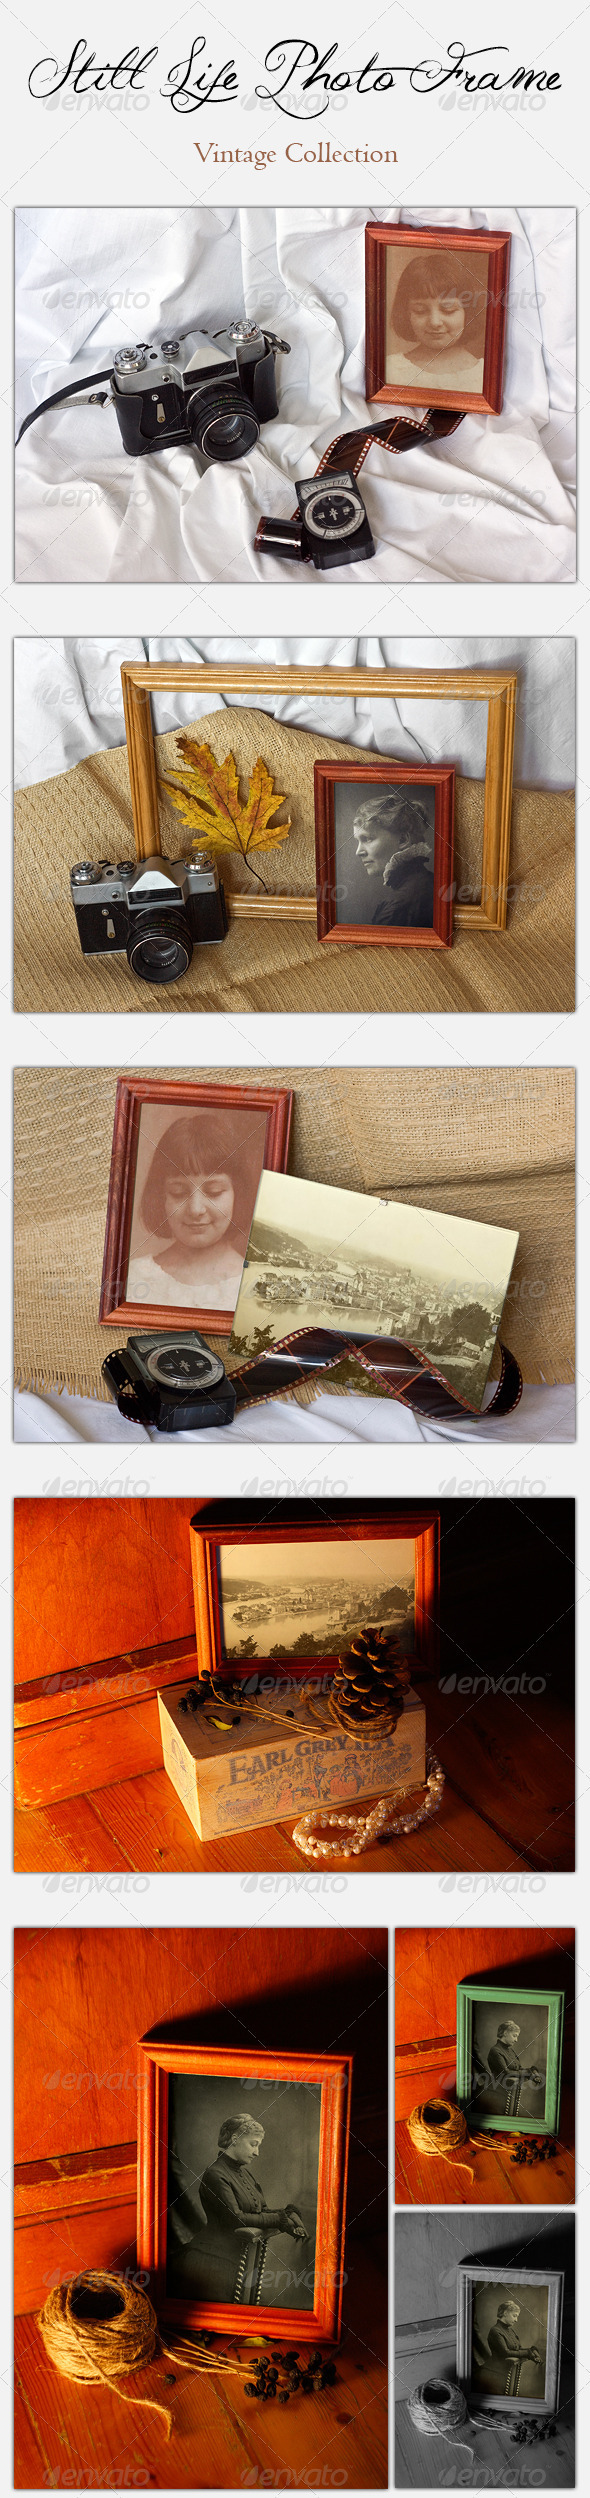 Still Life Photo Frame - Vintage Collection - Artistic Photo Templates